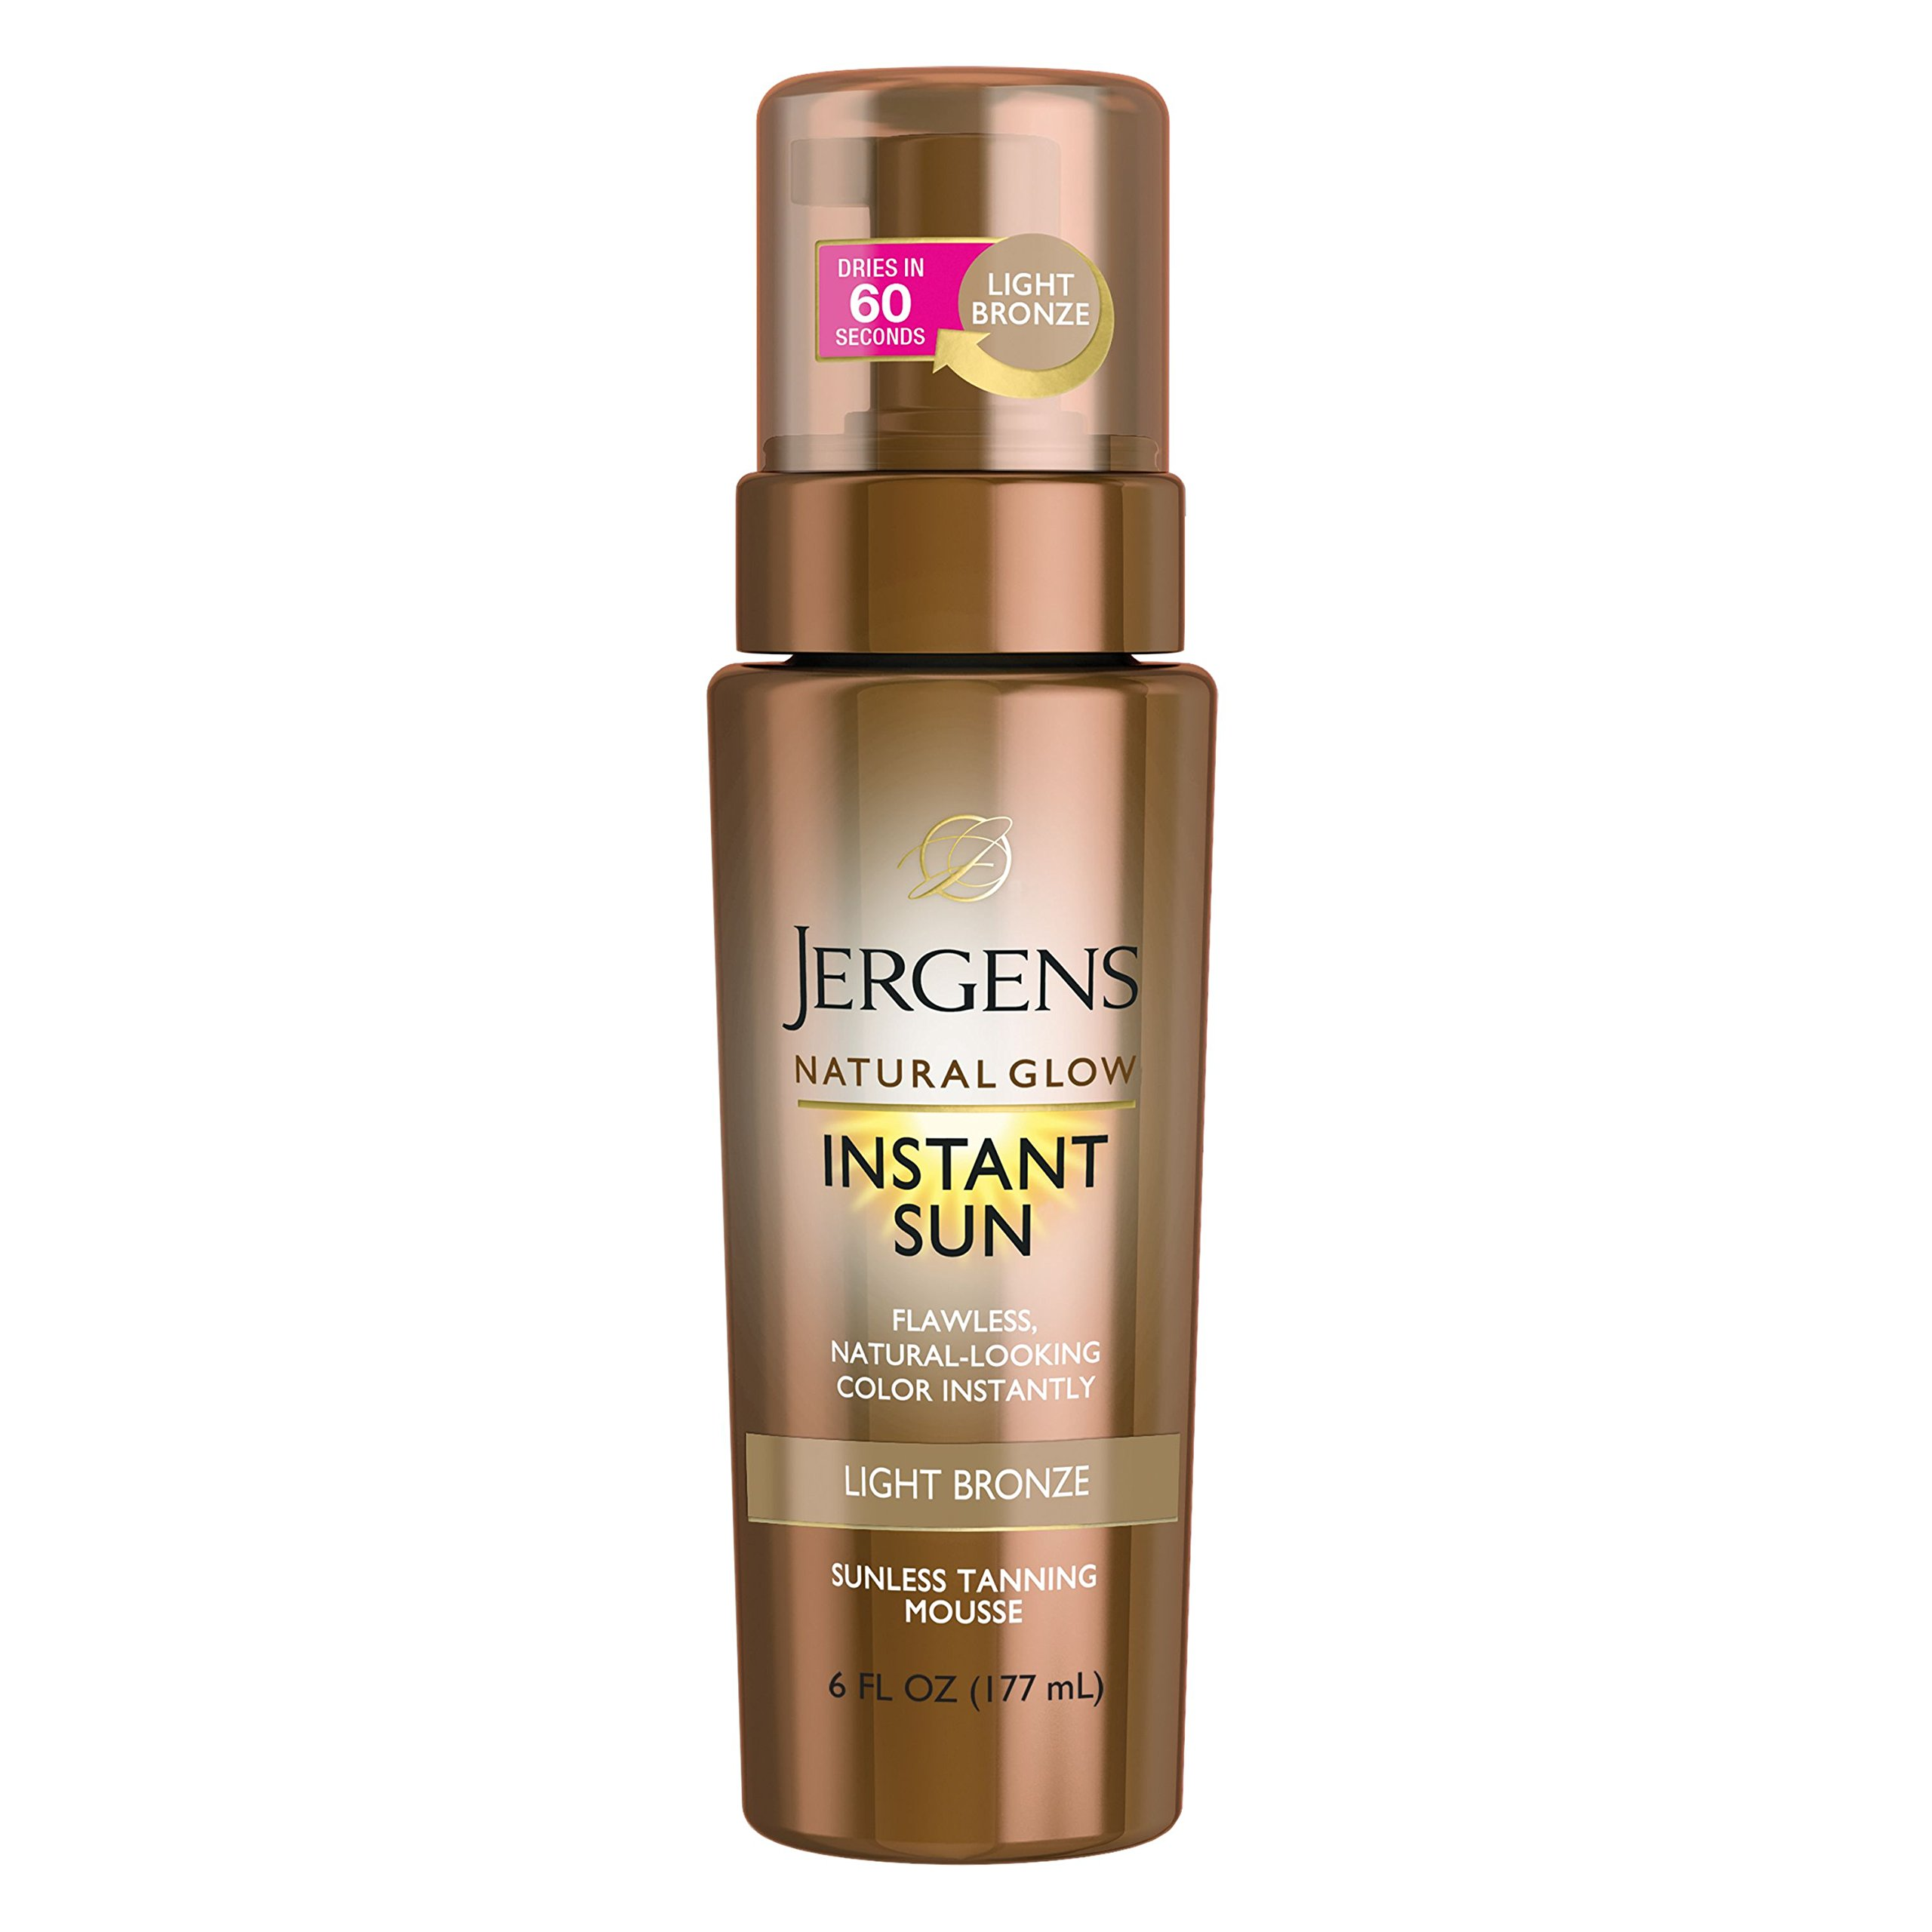 Jergens Natural Glow Instant Sun Sunless Tanning Mousse for Body, Light Bronze, 6 Ounces by Jergens